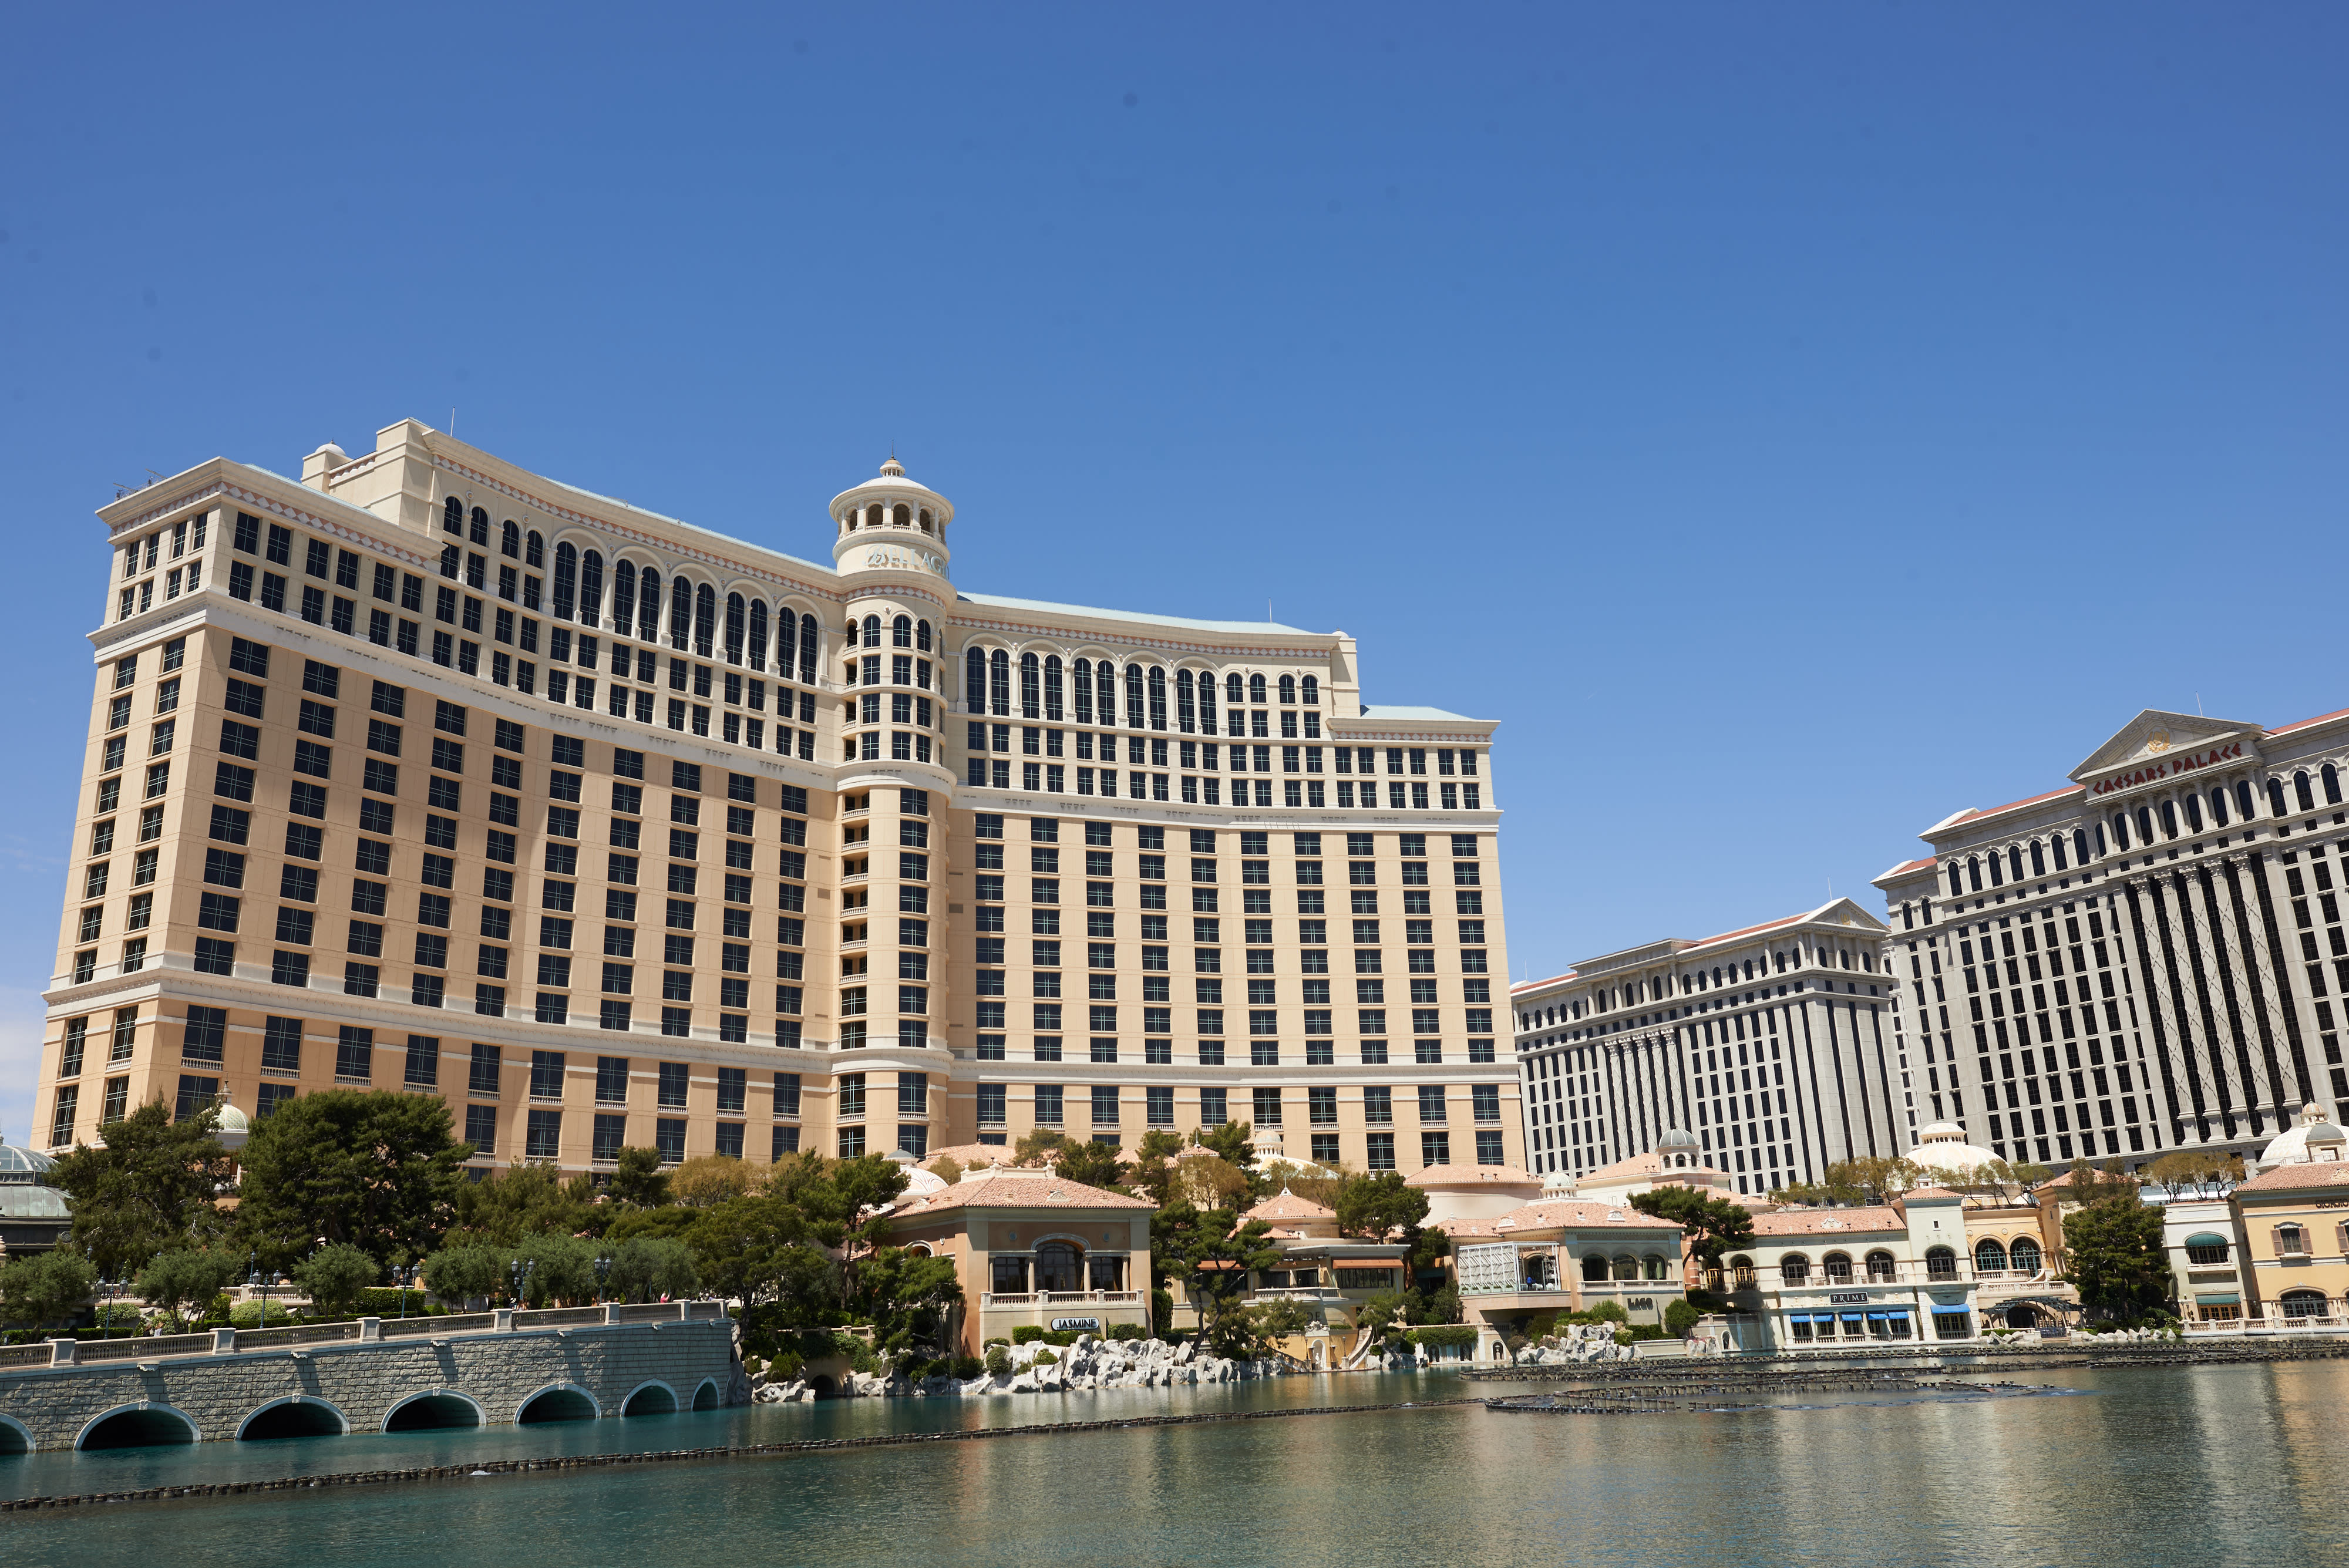 MGM Resorts to sell Circus Circus for $825 million, strikes deal to lease back Bellagio